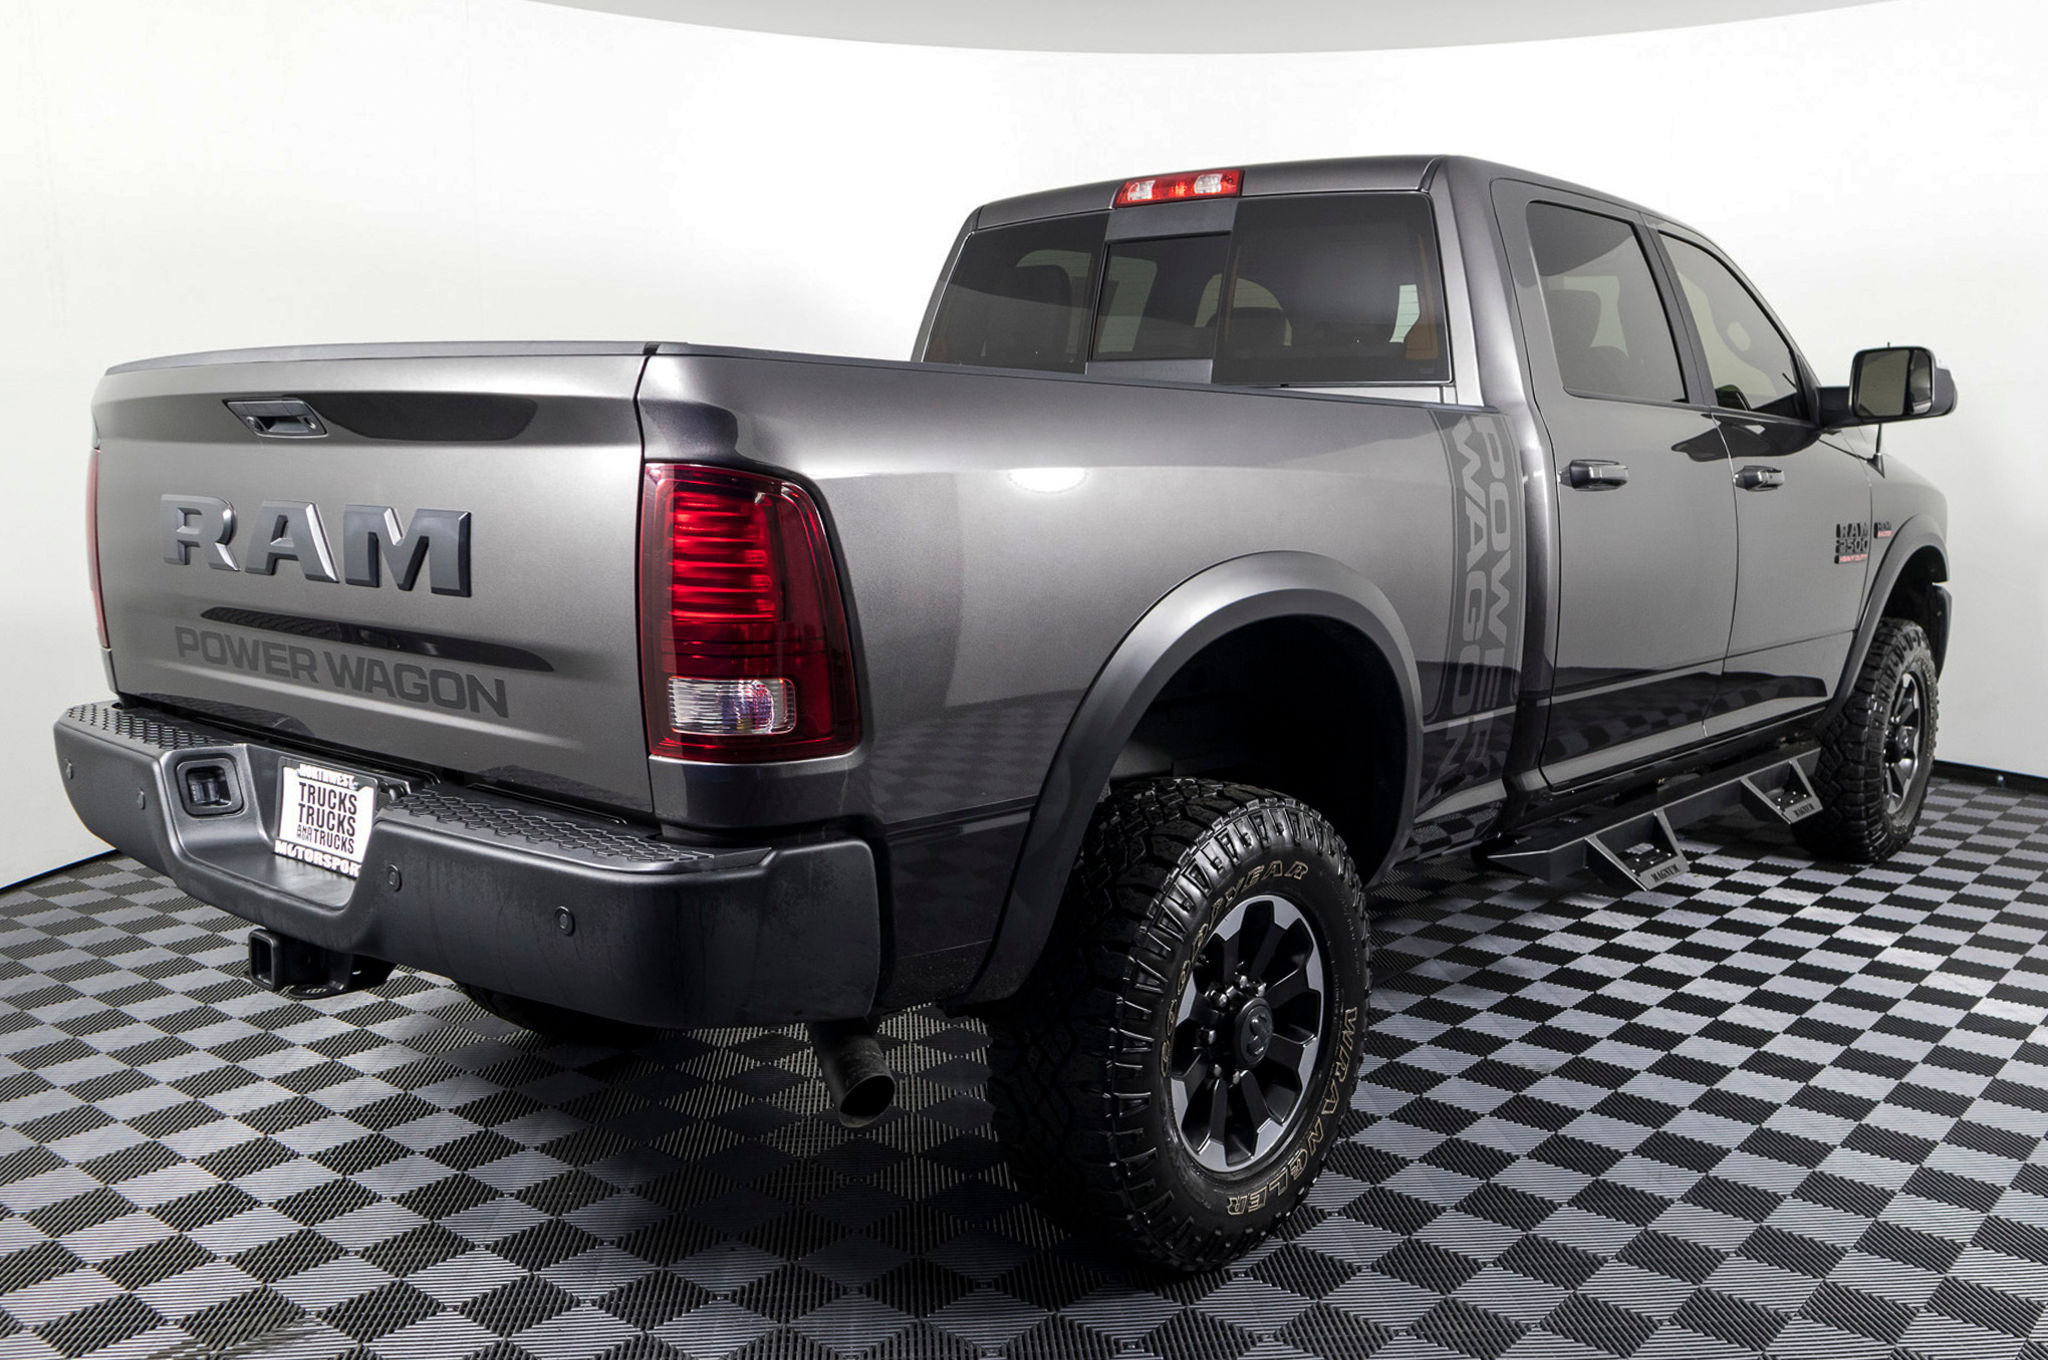 Used Lifted 2017 Dodge Ram 2500 Powerwagon 4x4 Truck For Sale A